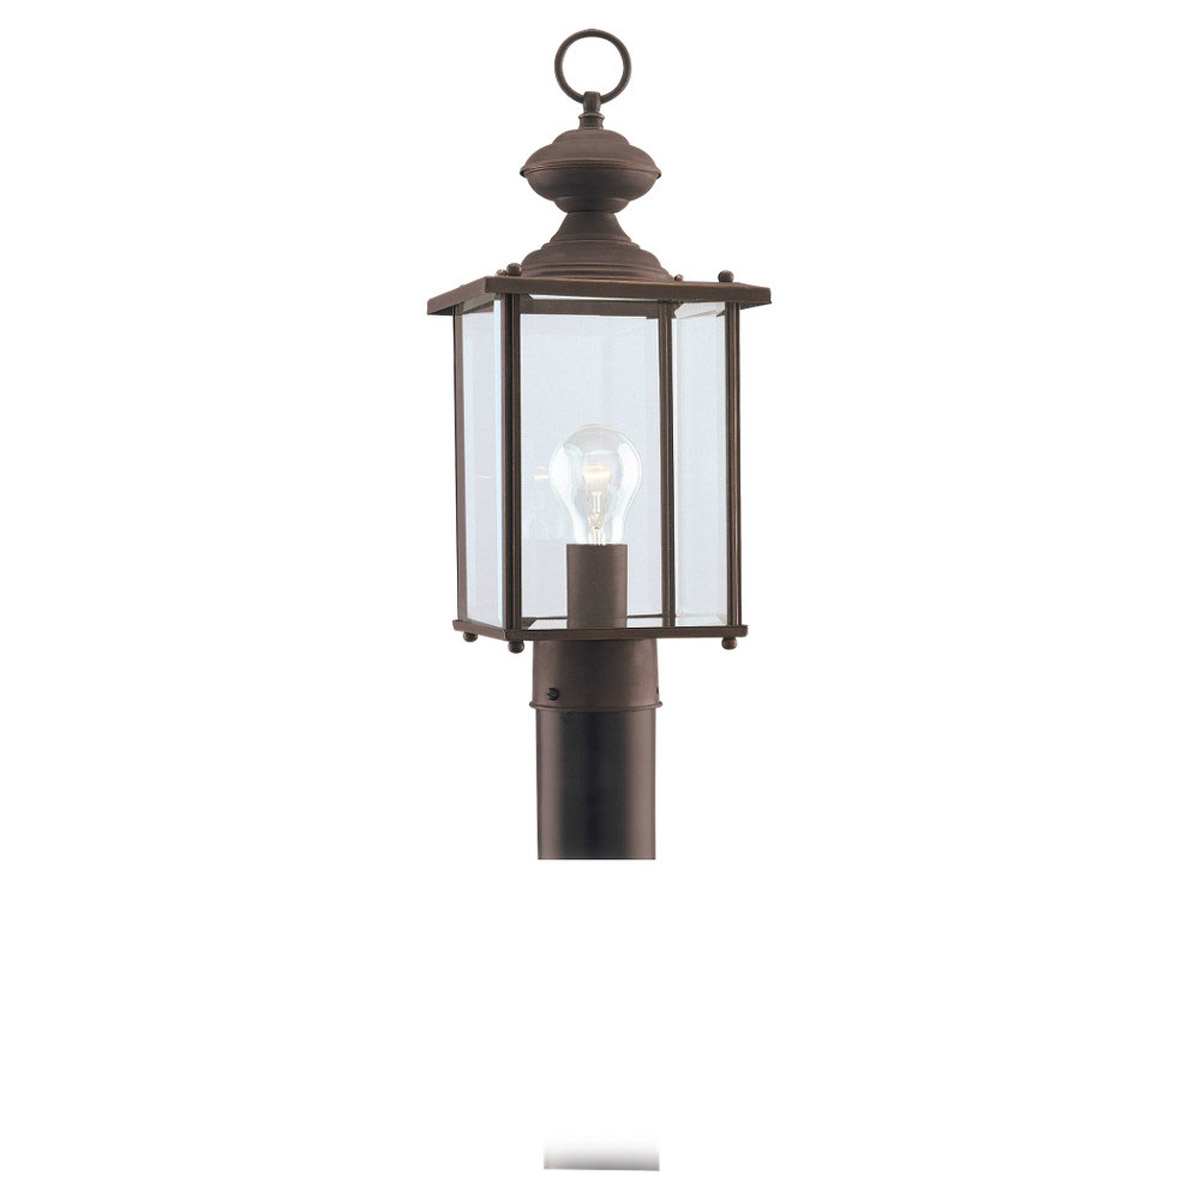 Sea Gull Lighting Jamestowne 1 Light Outdoor Post Lantern in Antique Bronze 8257-71